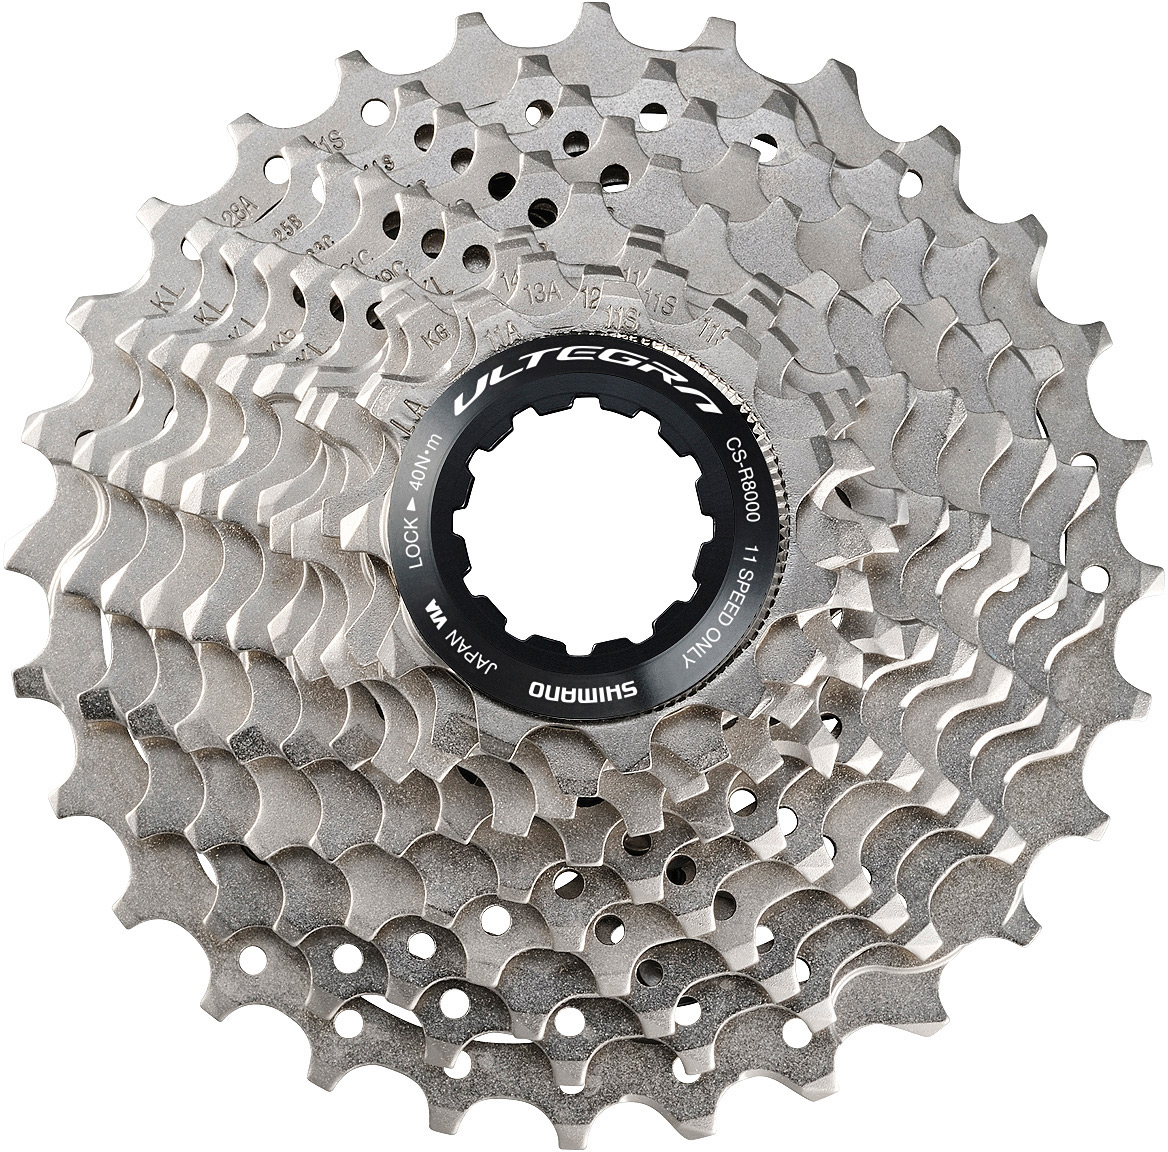 CS-R8000 Ultegra 11-speed cassette 11-28